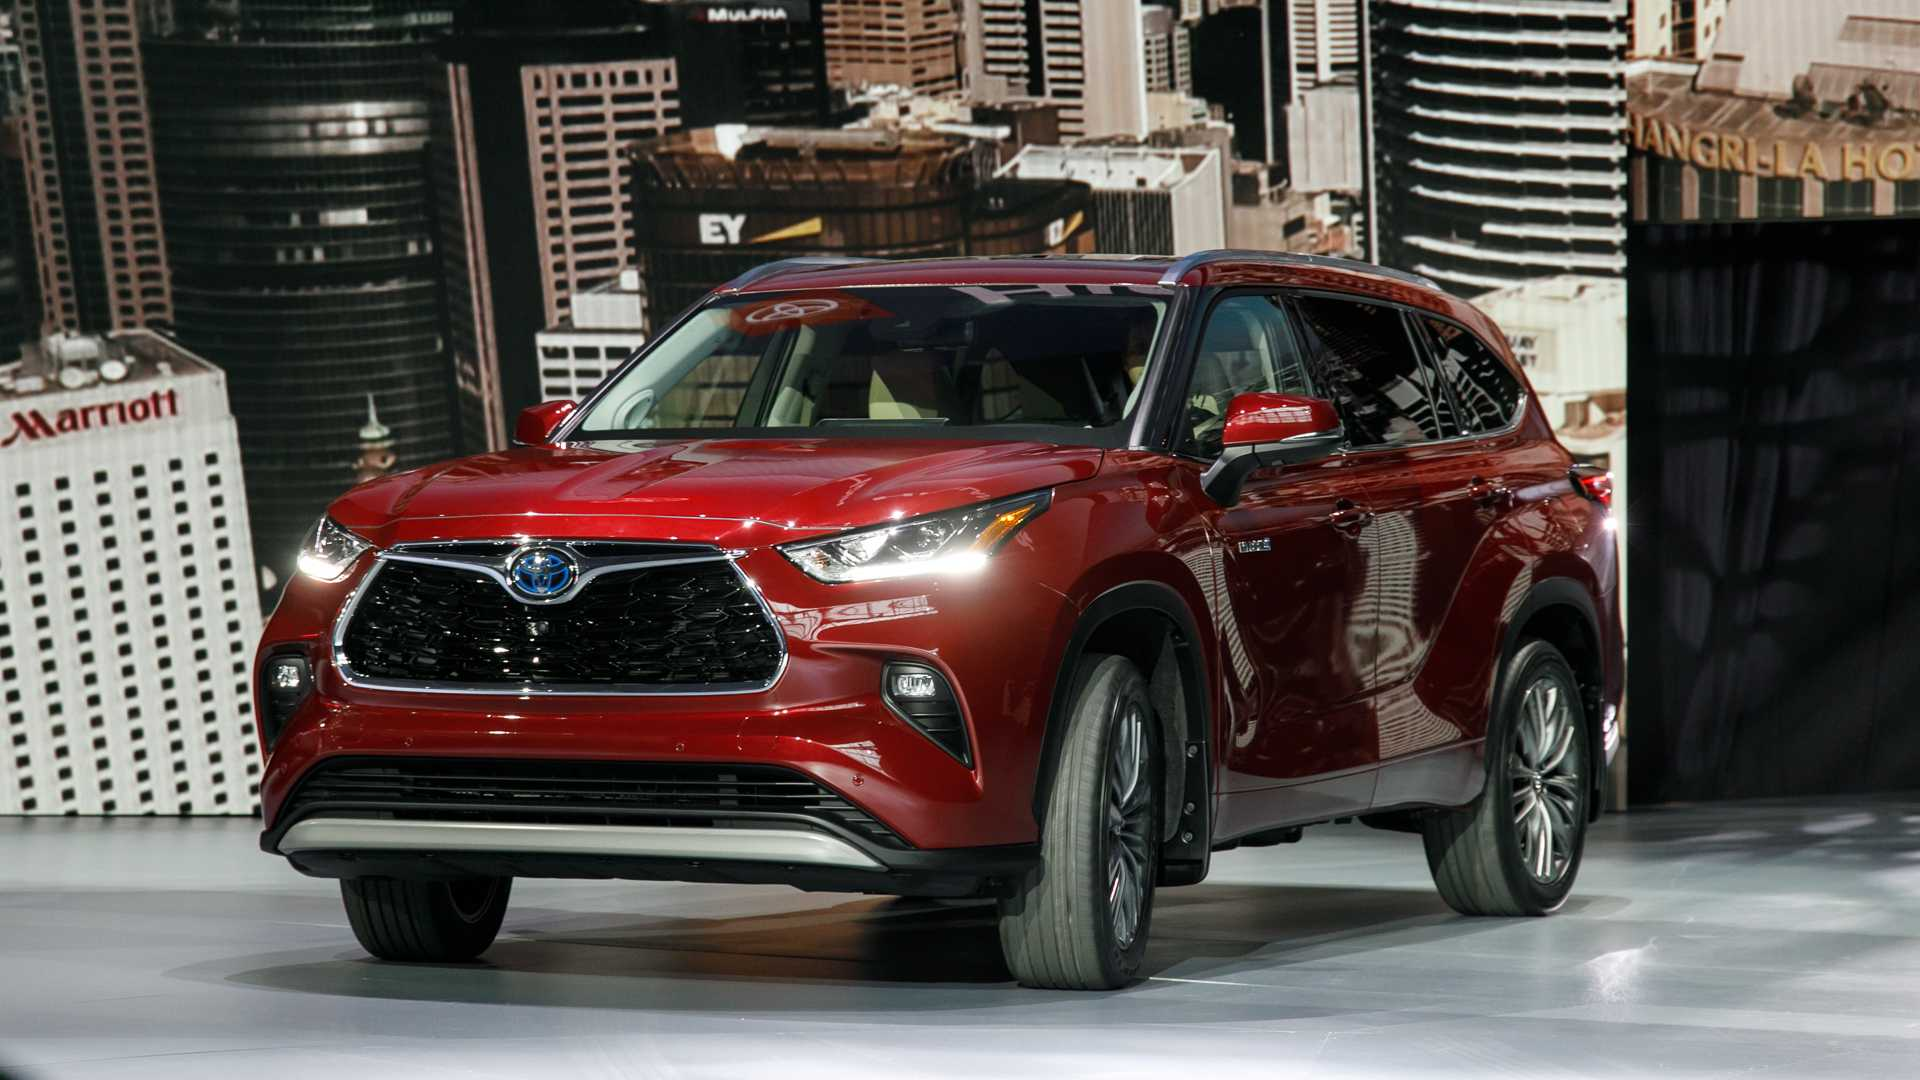 79 Best Review Toyota Kluger 2020 Australia Release Date Review with Toyota Kluger 2020 Australia Release Date